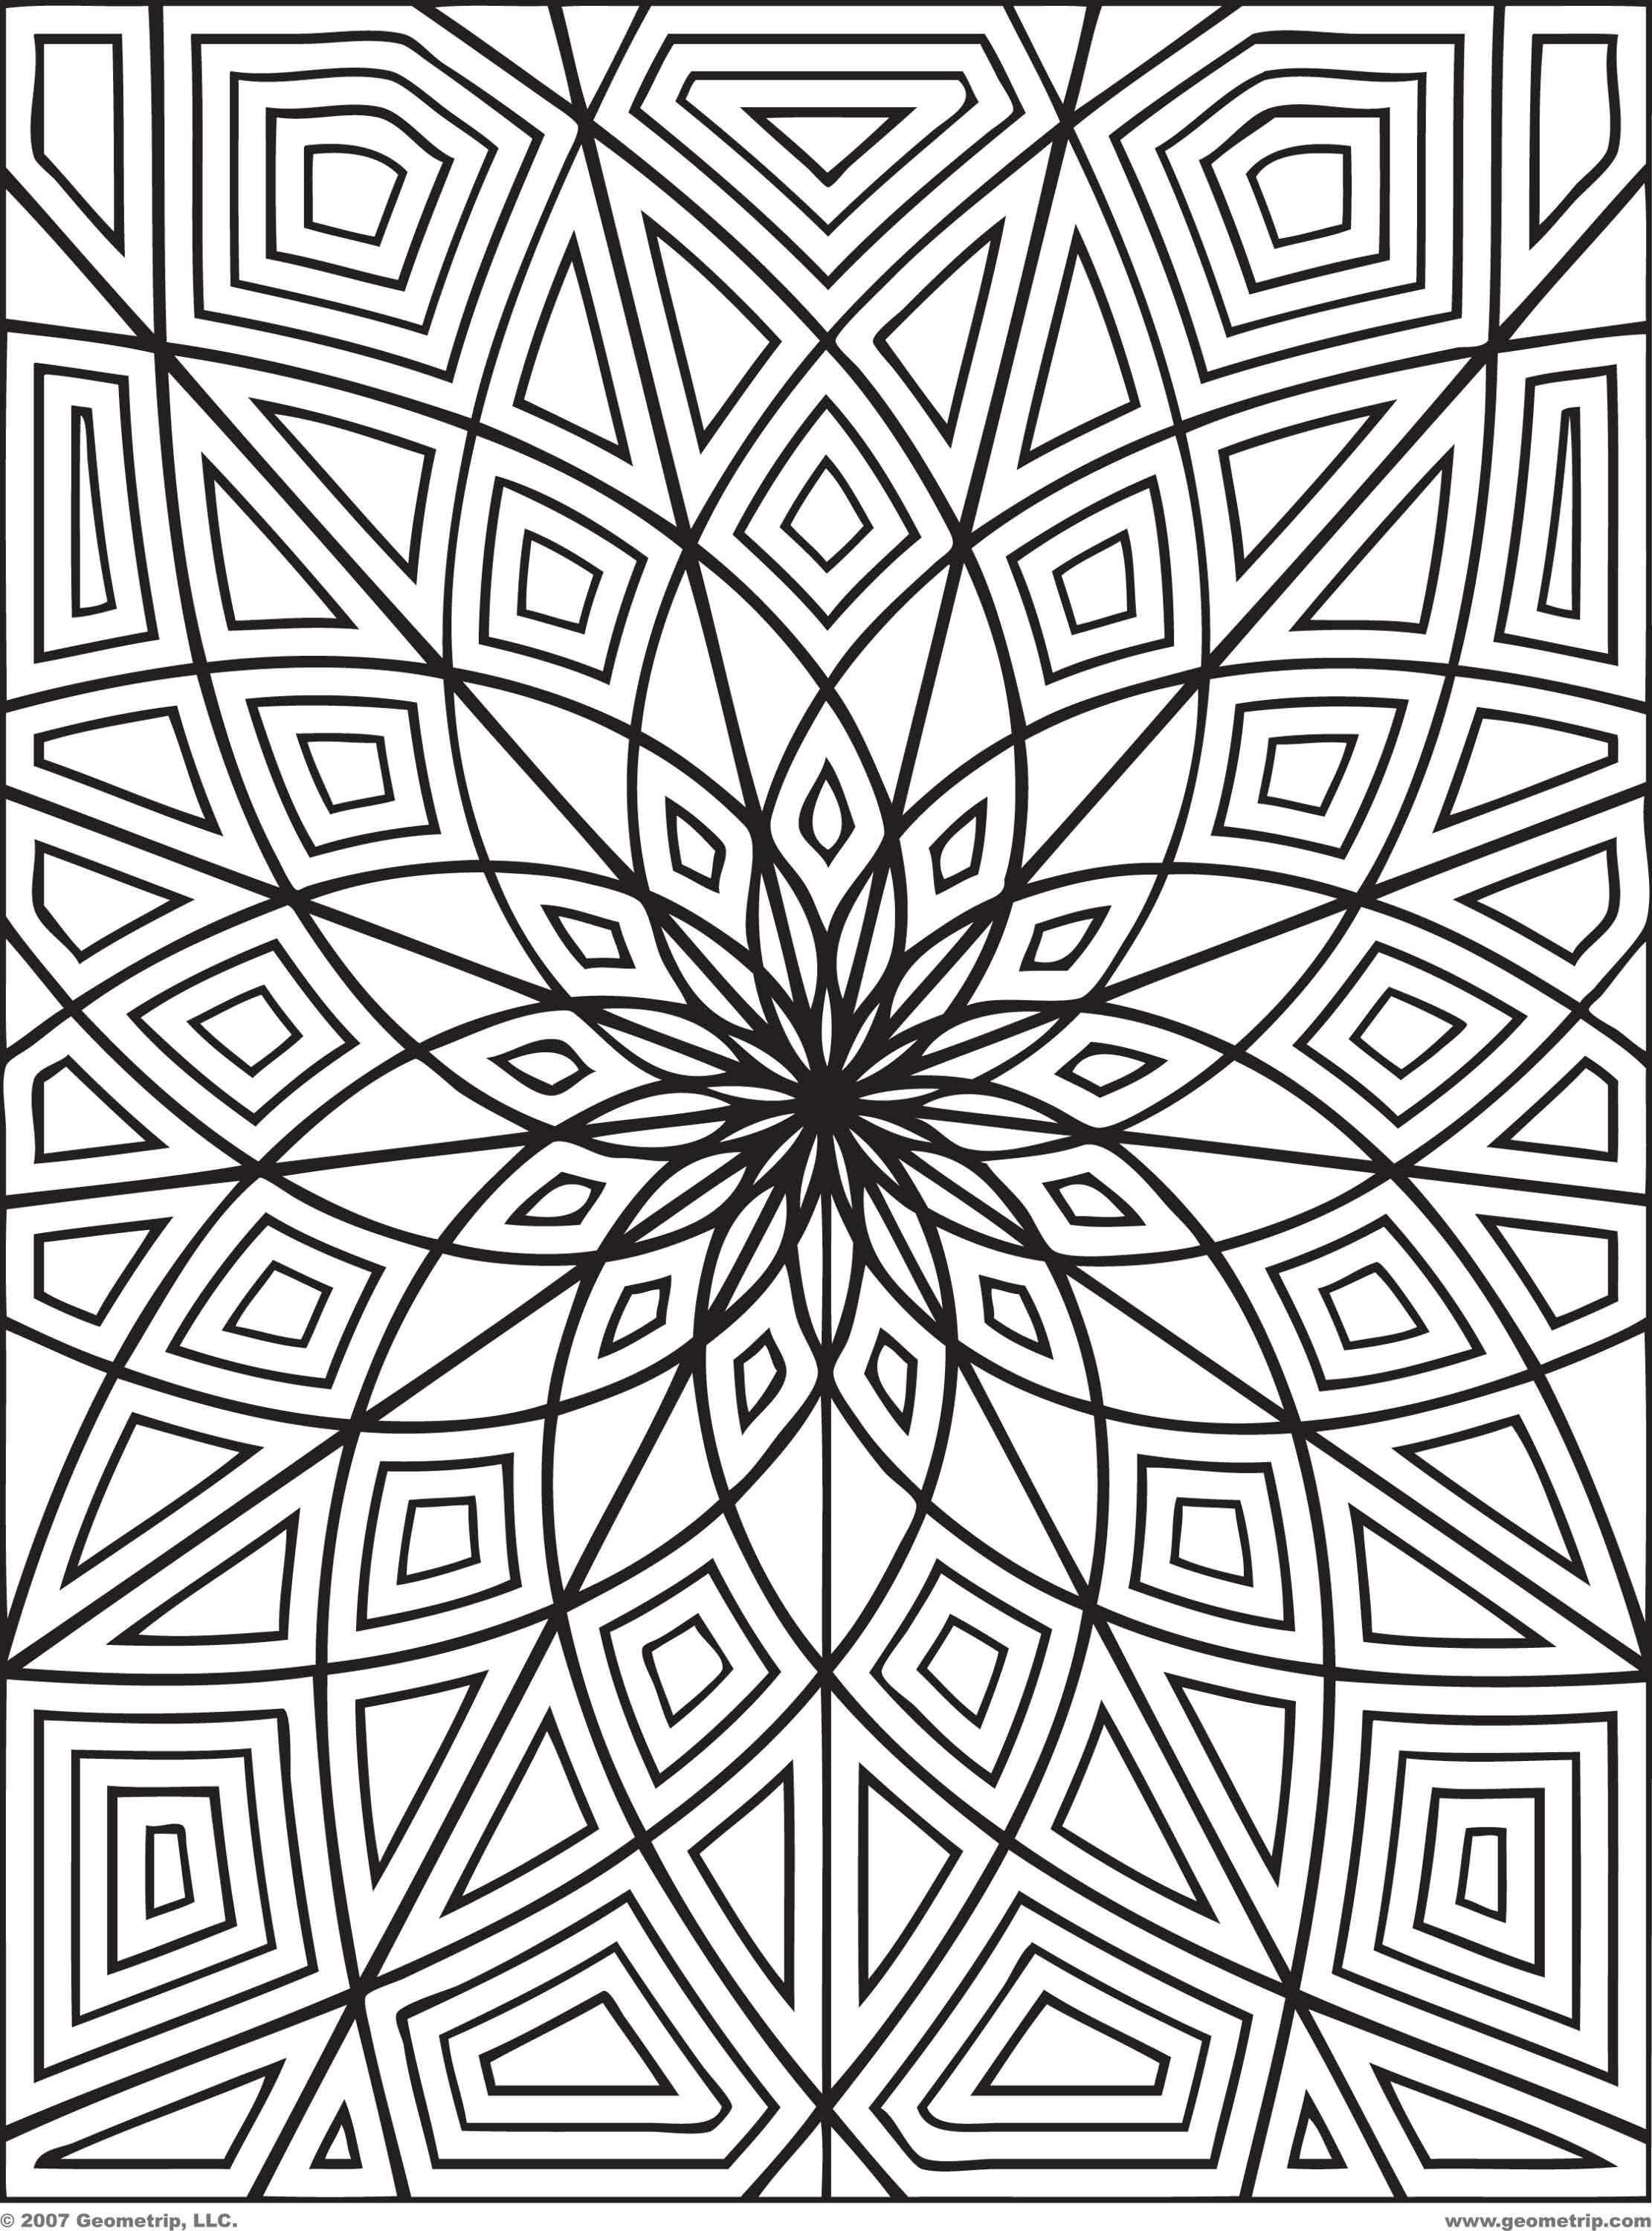 Best ideas about Free Coloring Sheets For Adults . Save or Pin Free Printable Adult Coloring Pages Awesome Image 14 Now.